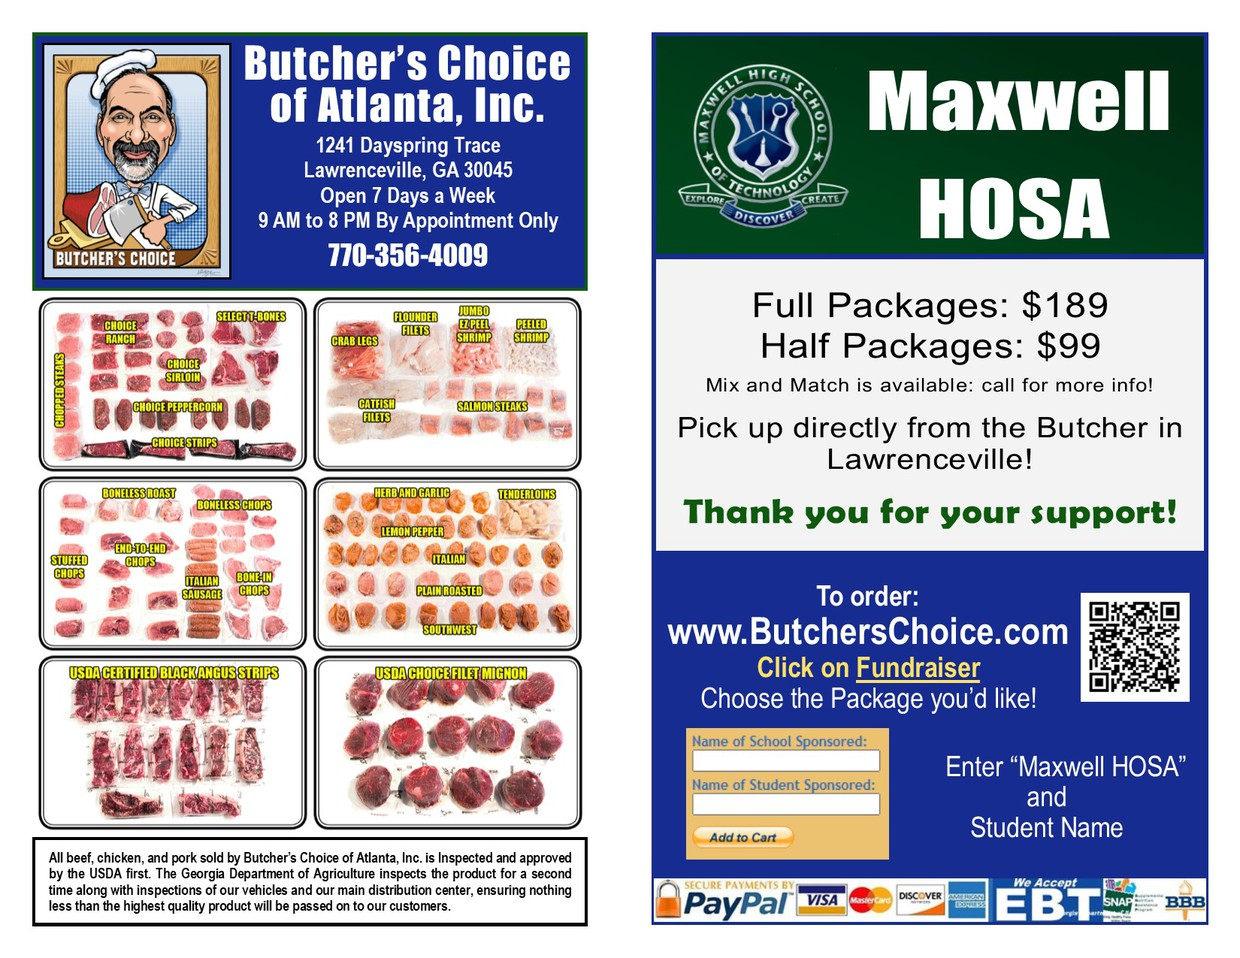 HOSA fundraiser of selling different cuts of meats.  Link to store provided.